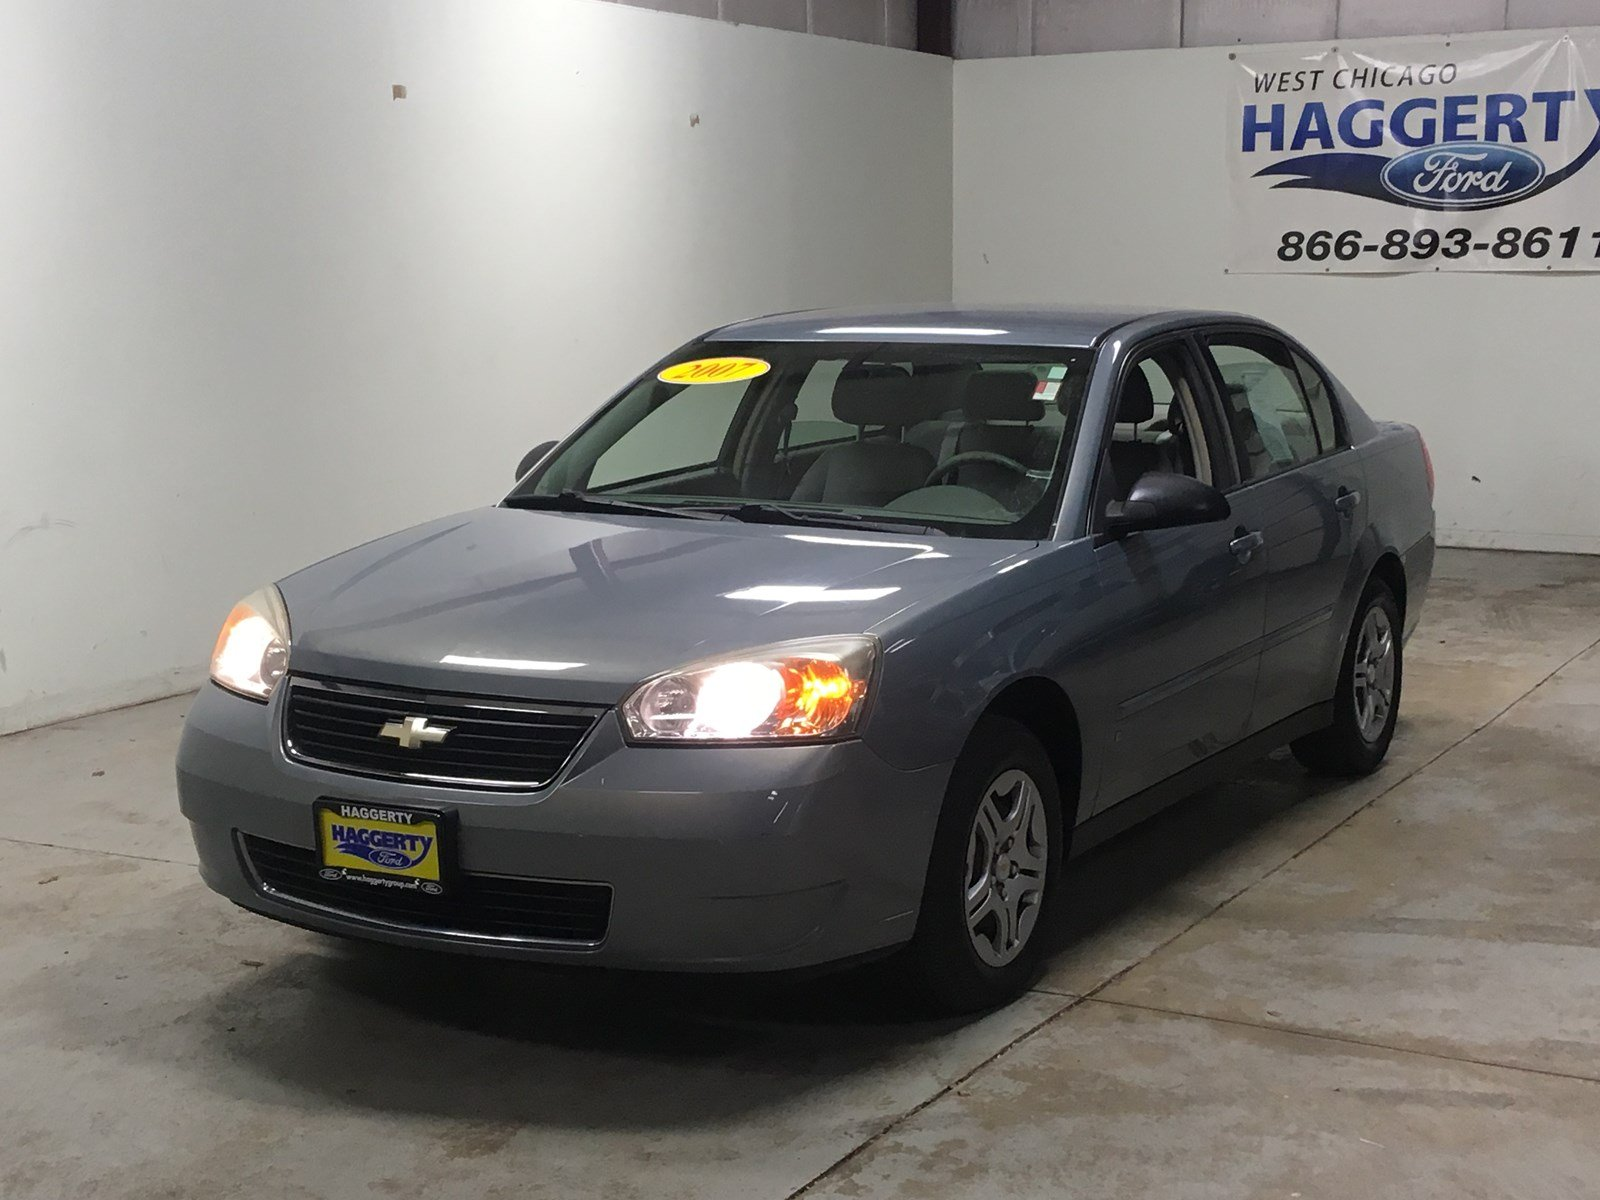 Pre Owned 2007 Chevrolet Malibu LS w 1LS 4dr Car in West Chicago